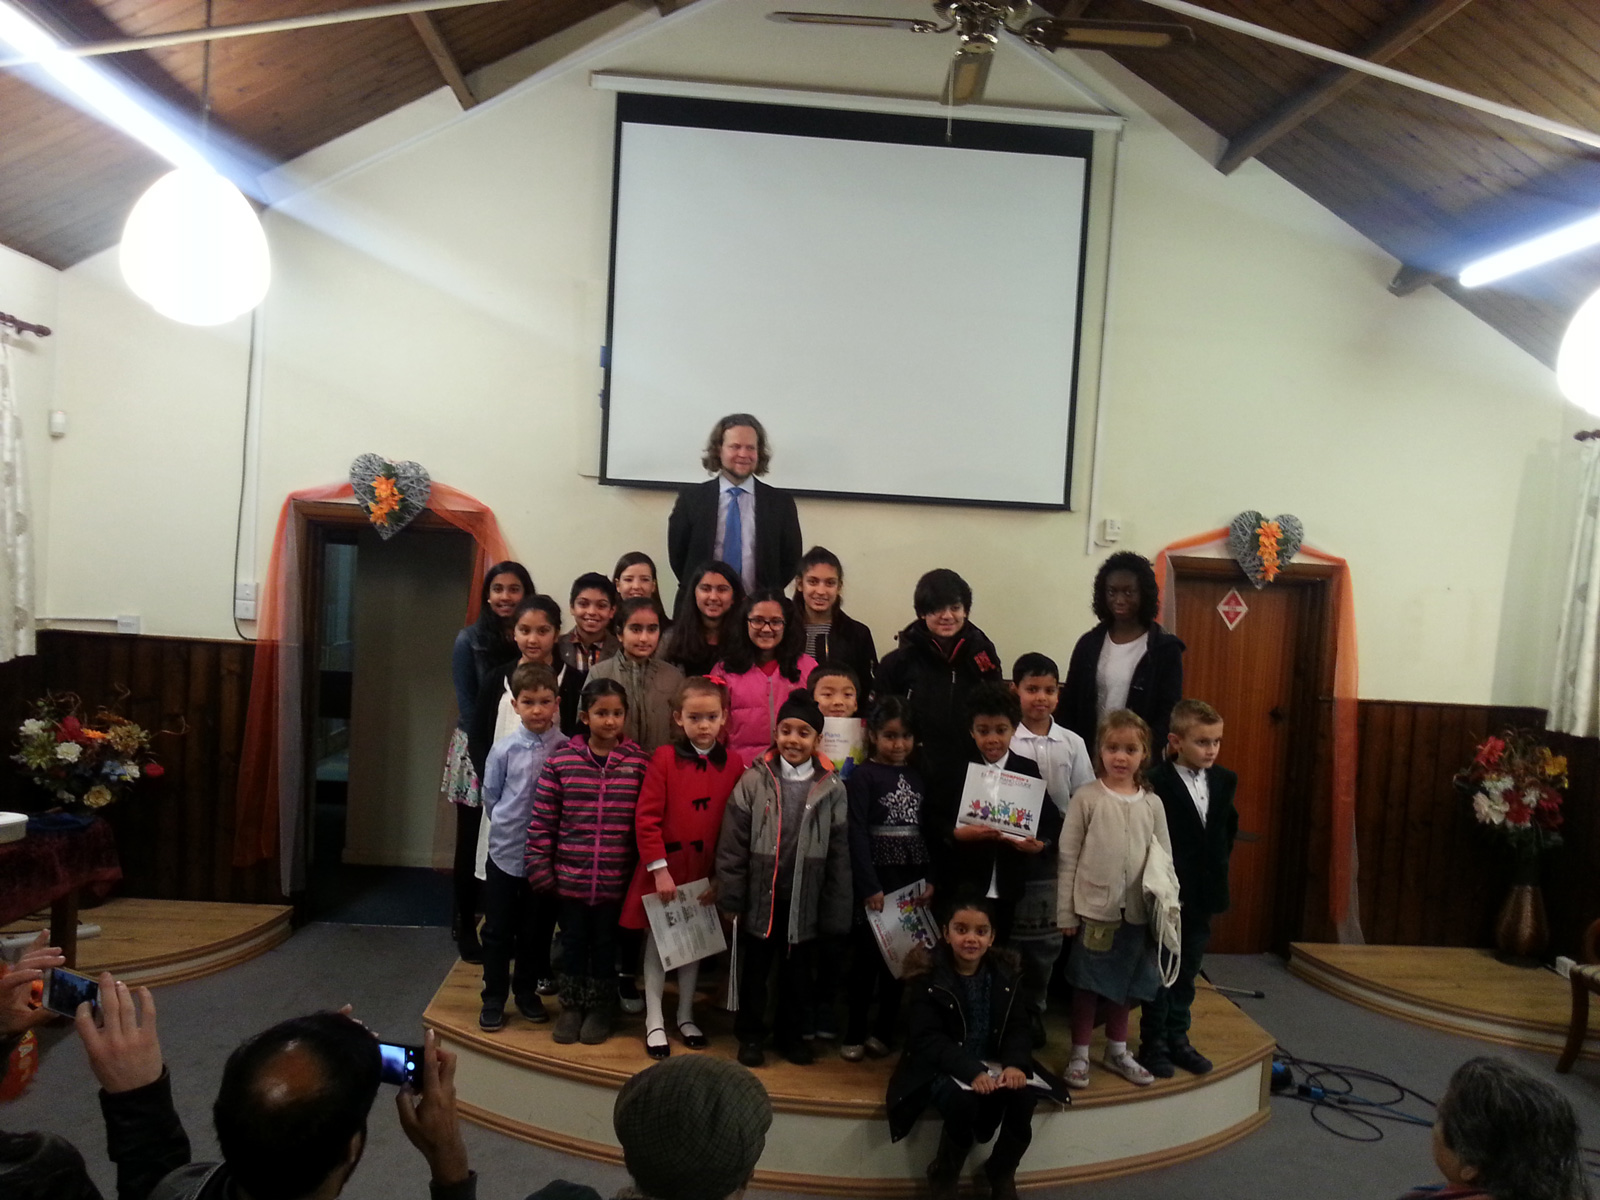 Thames Valley Piano School Performed At The End-of-Term Concert In Slough